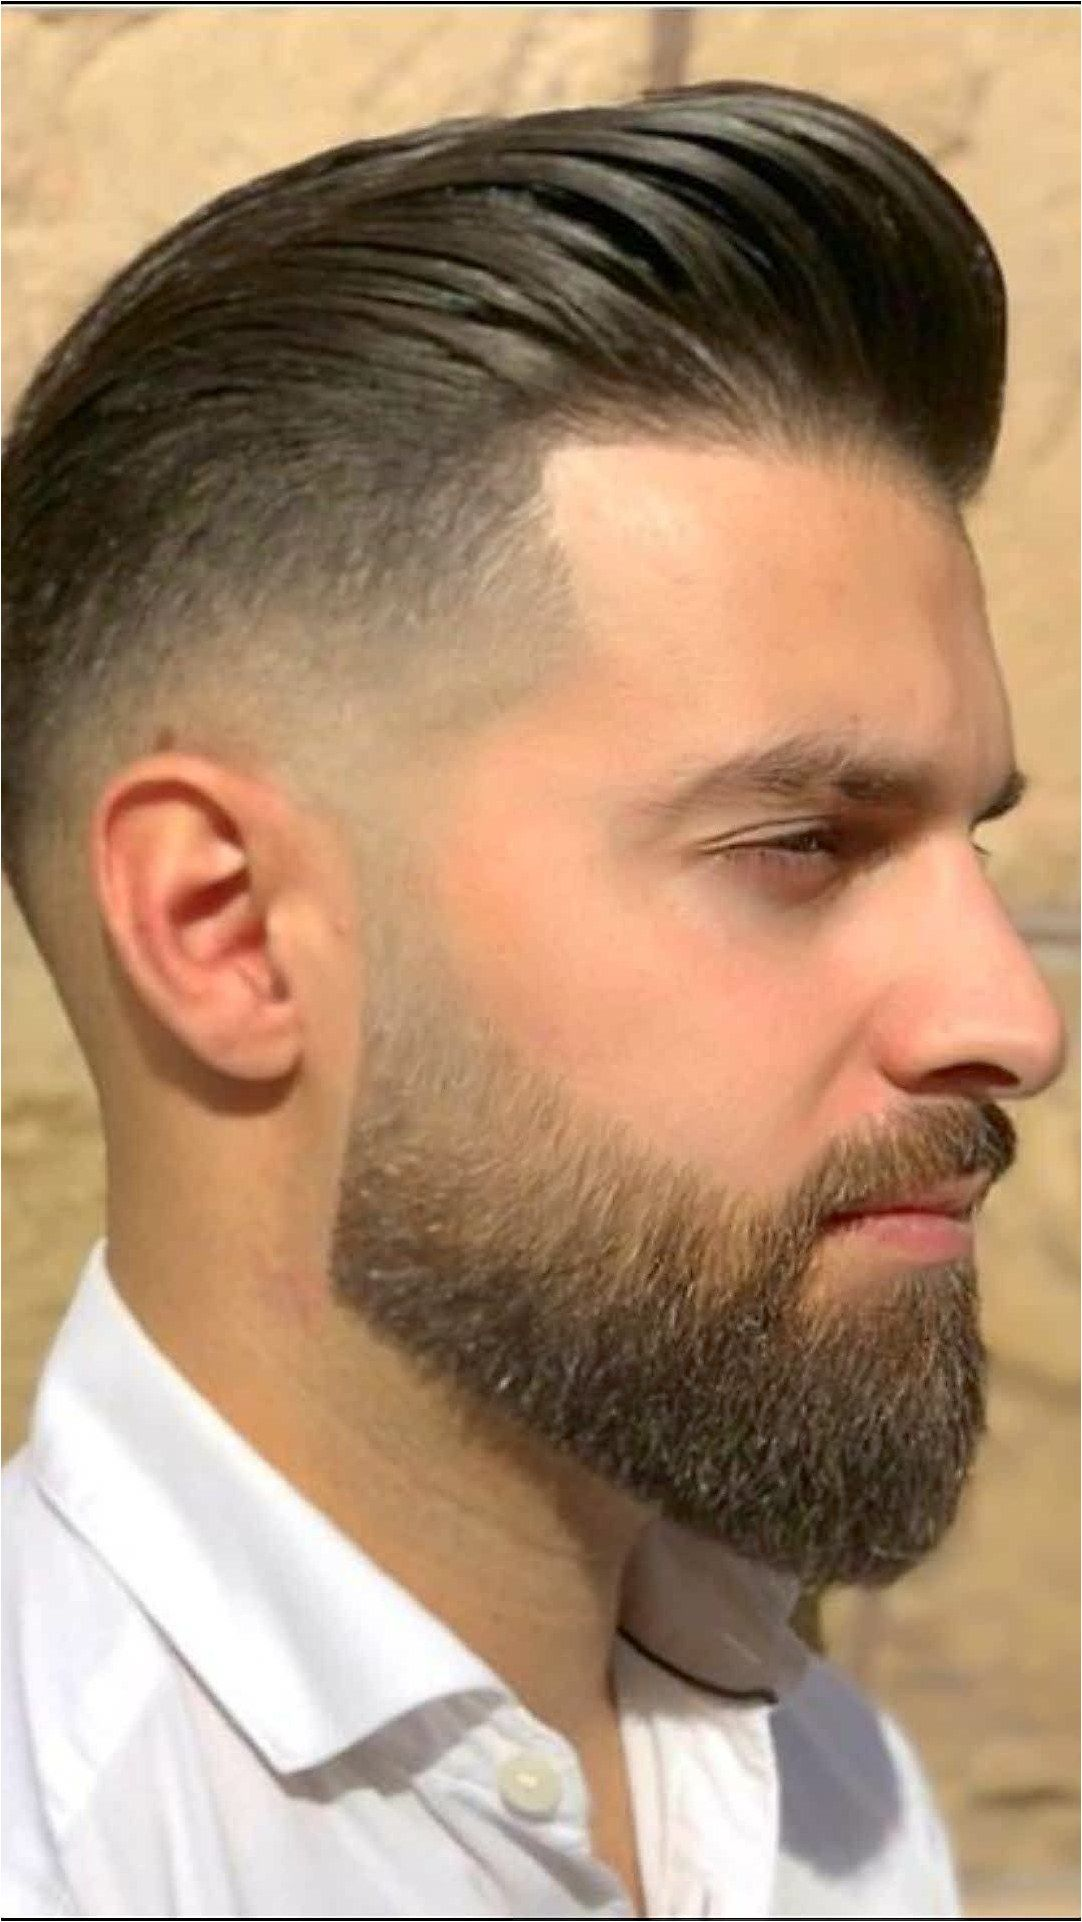 35 Best Male Grooming images | Male